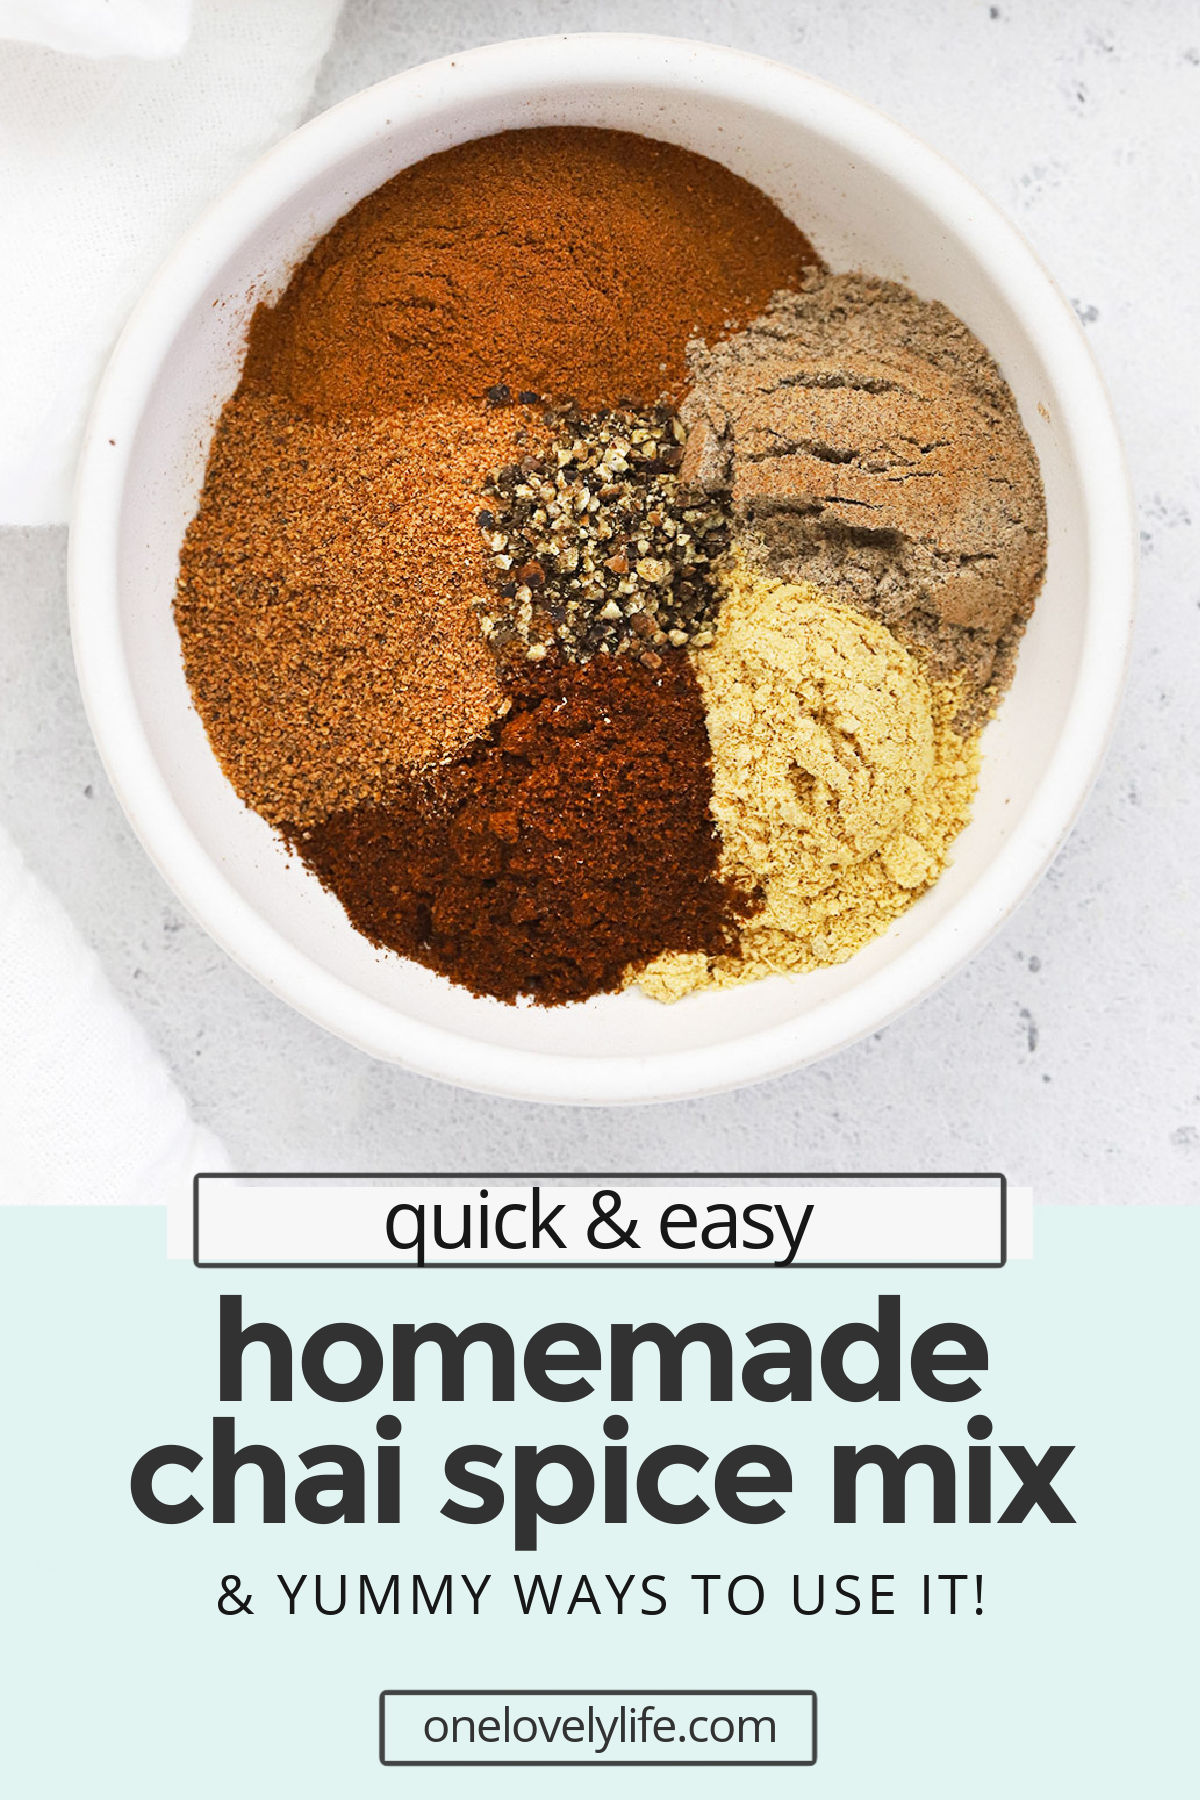 Chai Spice Mix - Learn how to make chai spice mix with our easy recipe! Add it to drinks, baked goods, and so much more. Don't miss all our favorite ways to use it in the post! (Naturally vegan, paleo, Whole30) // DIY Chai Spice // Homemade Chai Mix // Homemade Spice Blend // Chai Spice From Scratch// #chaispice #chai #fromscratch